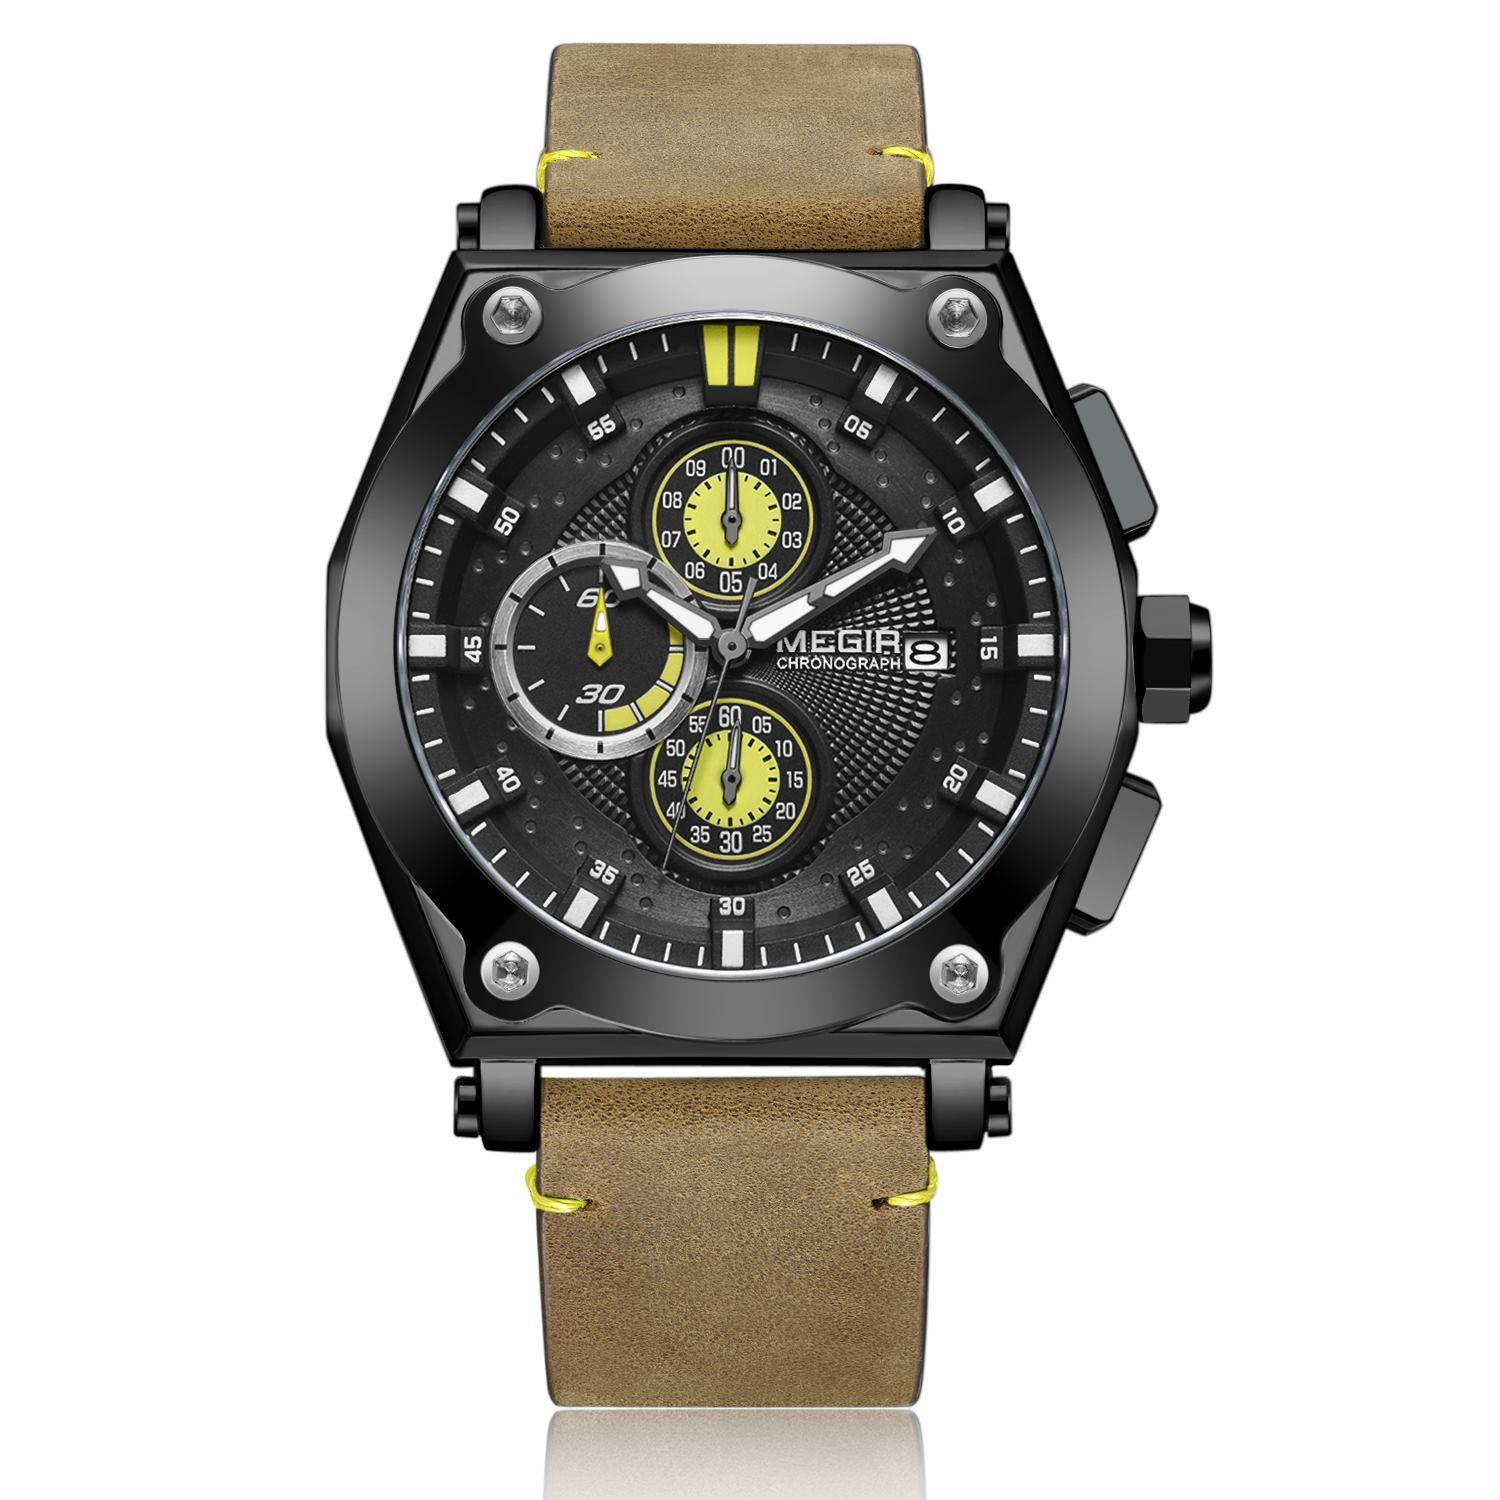 MEGIR Quartz Watches for Men 2098 - MEGIR